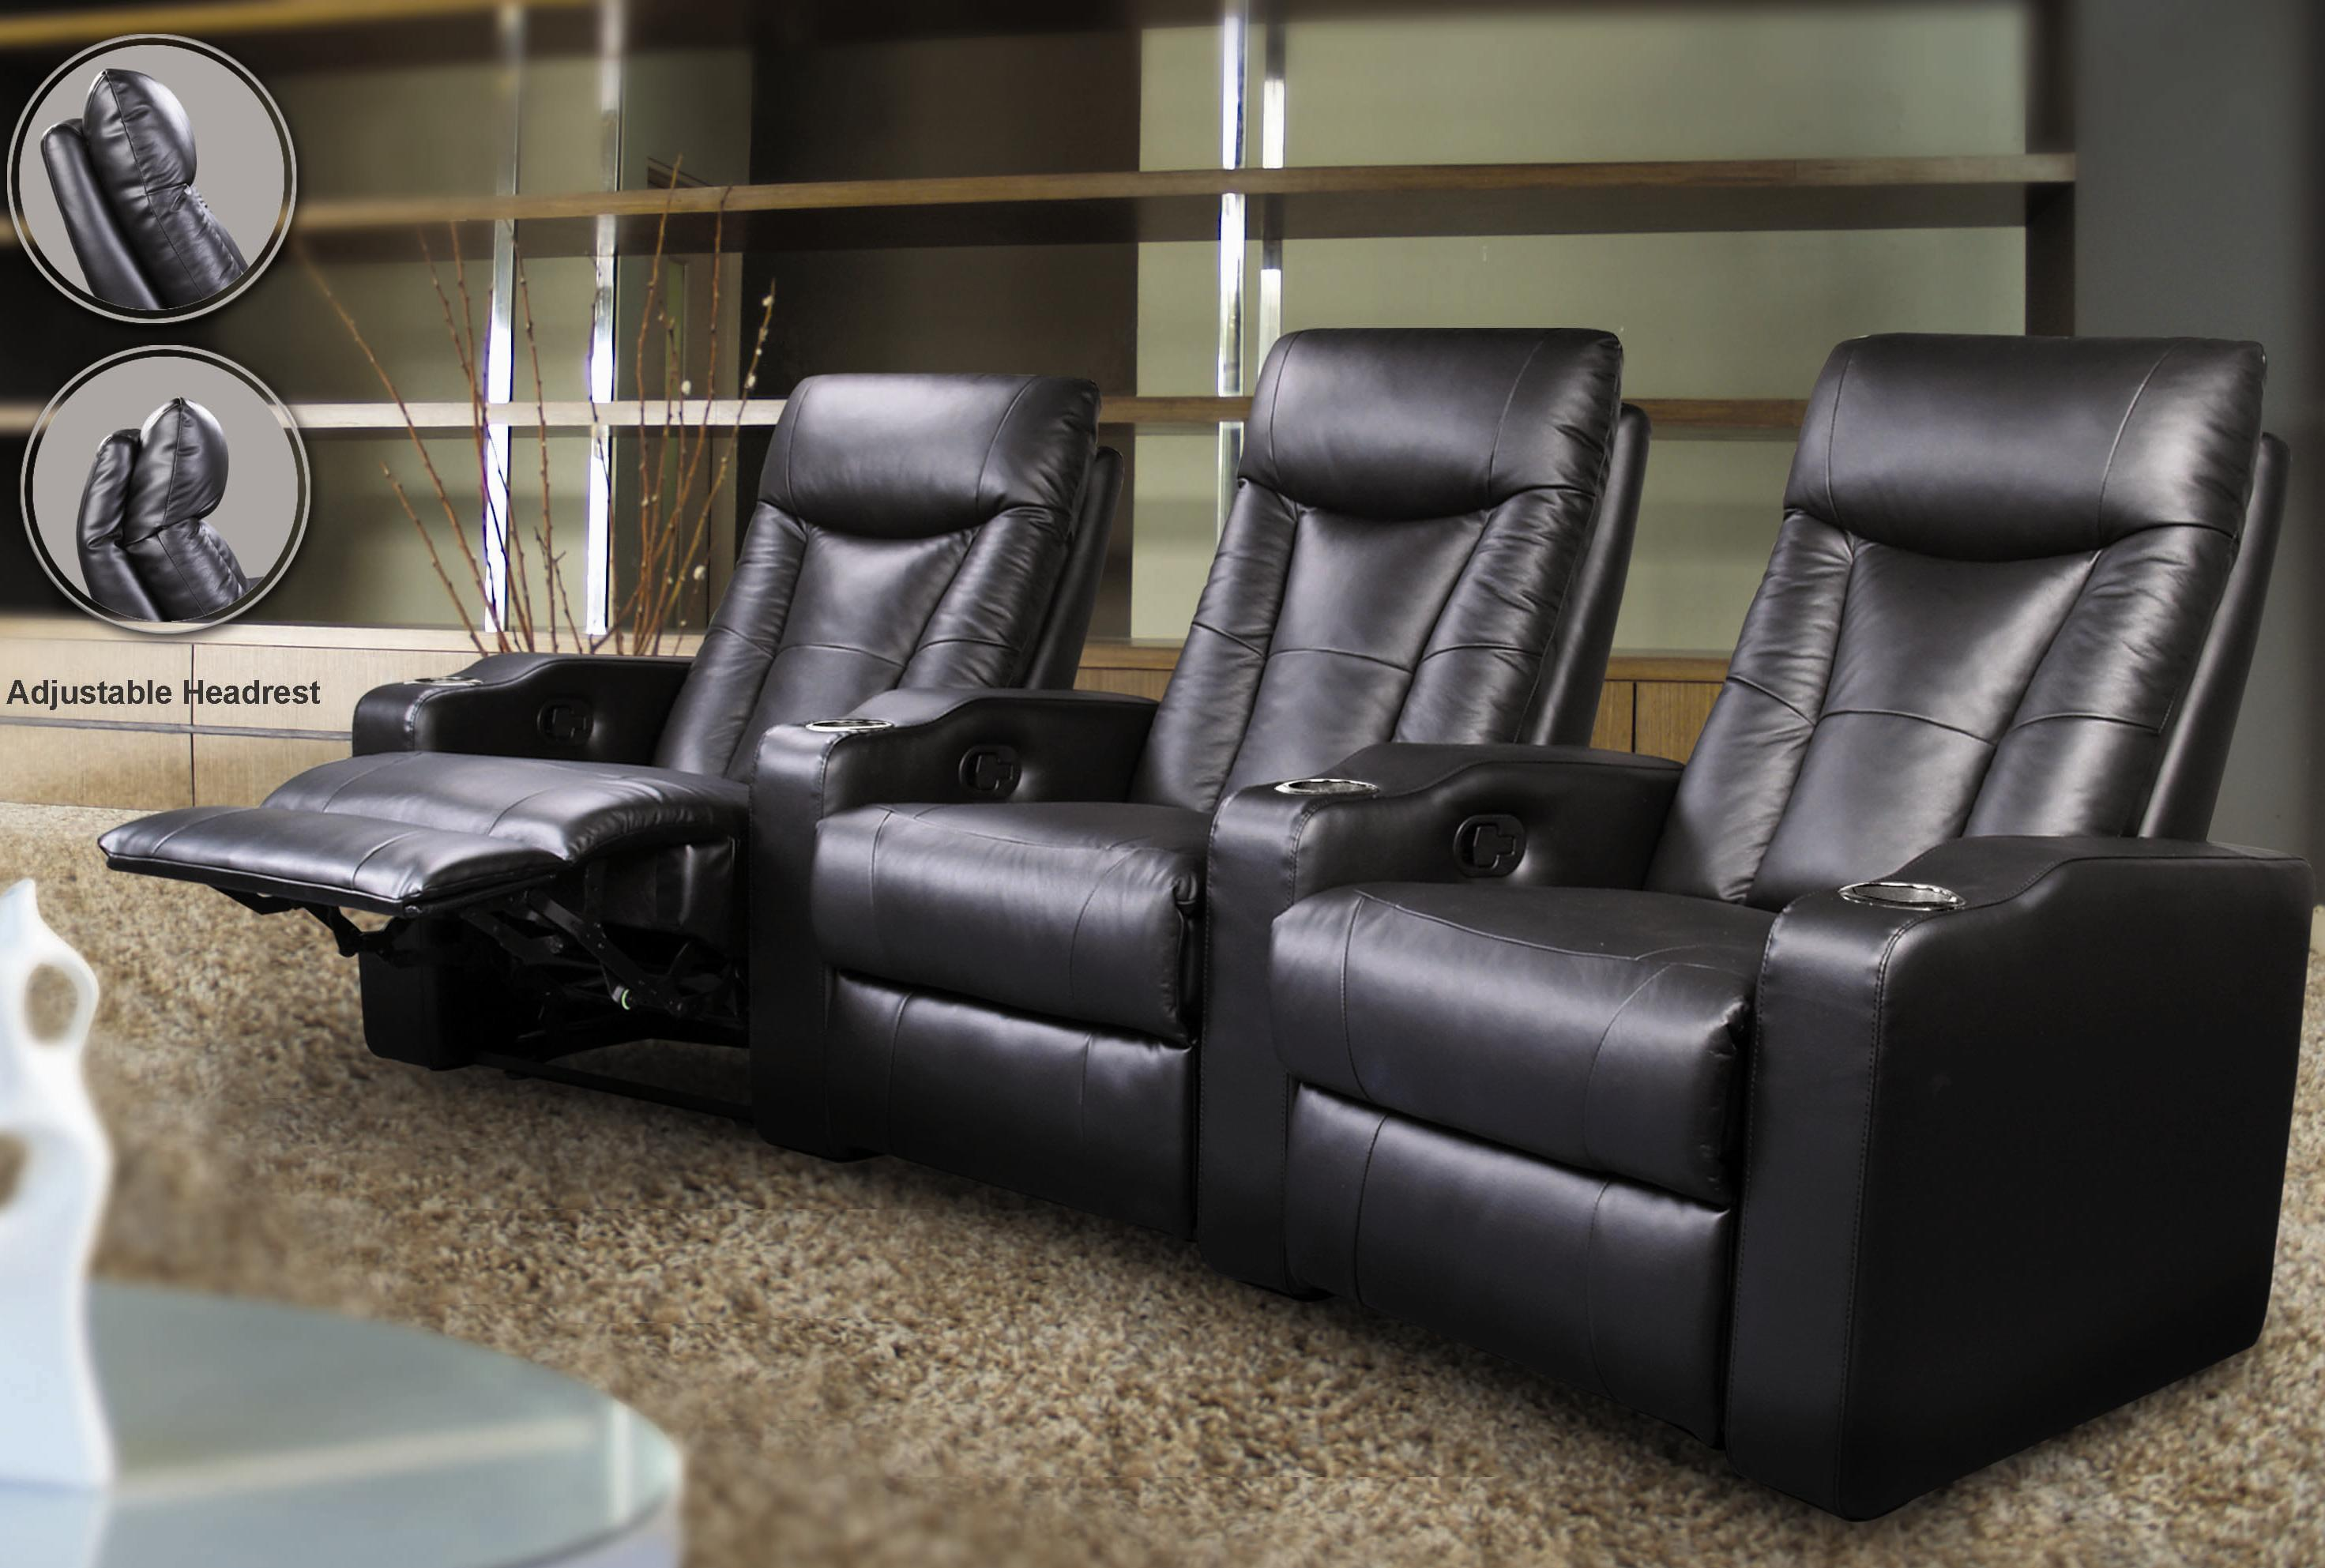 Pavillion Leather Theater Seating Image